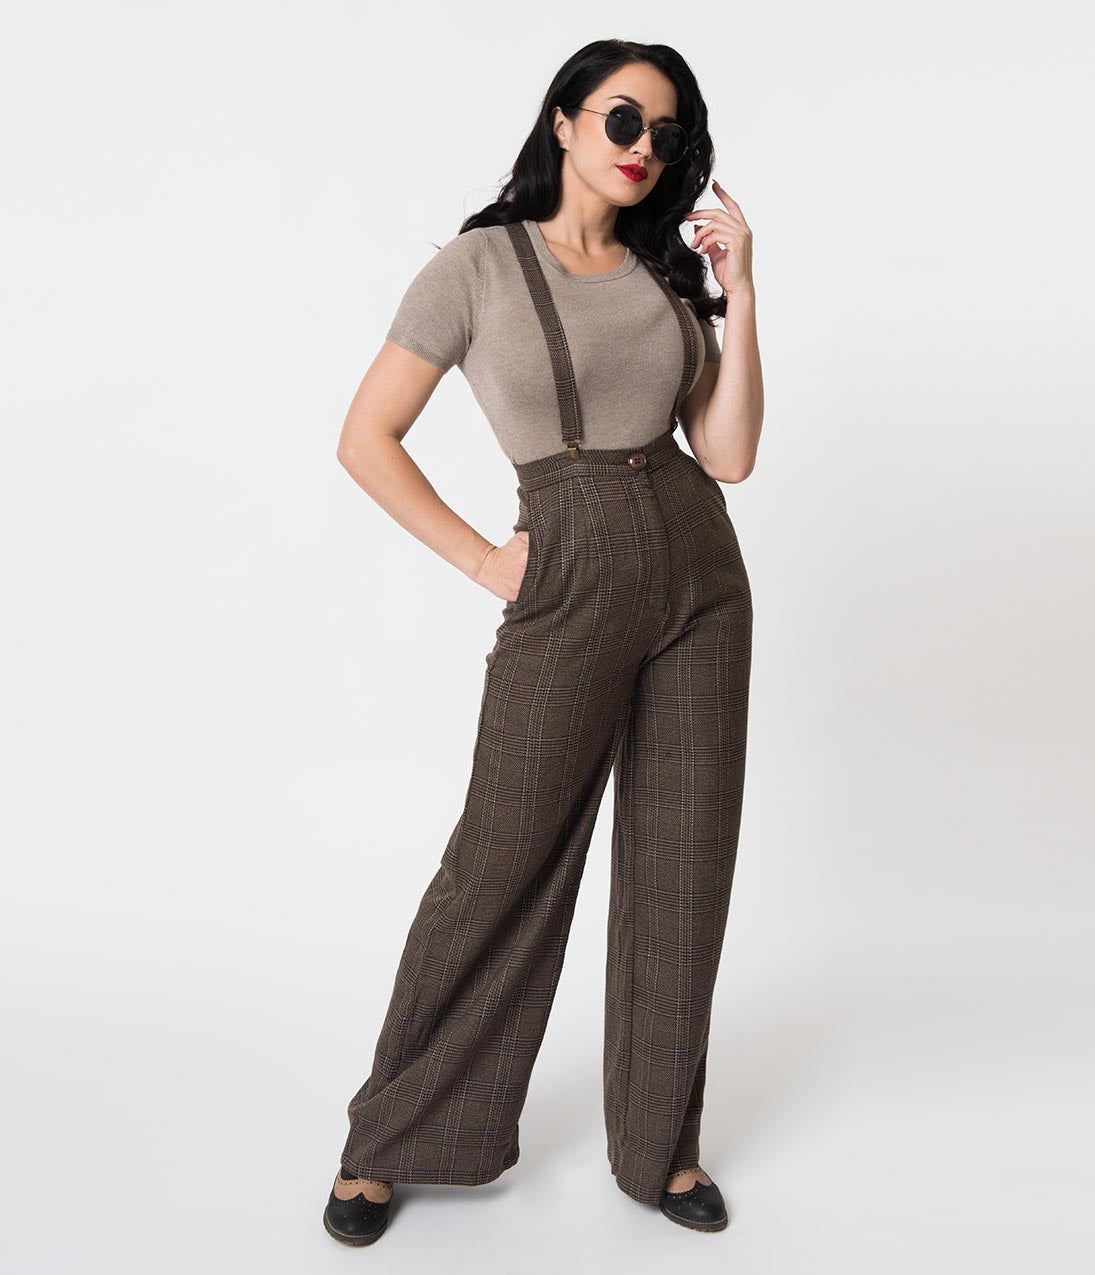 1940s Pants History- Overalls, Jeans, Sailor, Siren Suits Collectif 1940S Style Brown Librarian Check High Waist Glinda Suspender Pants $58.00 AT vintagedancer.com